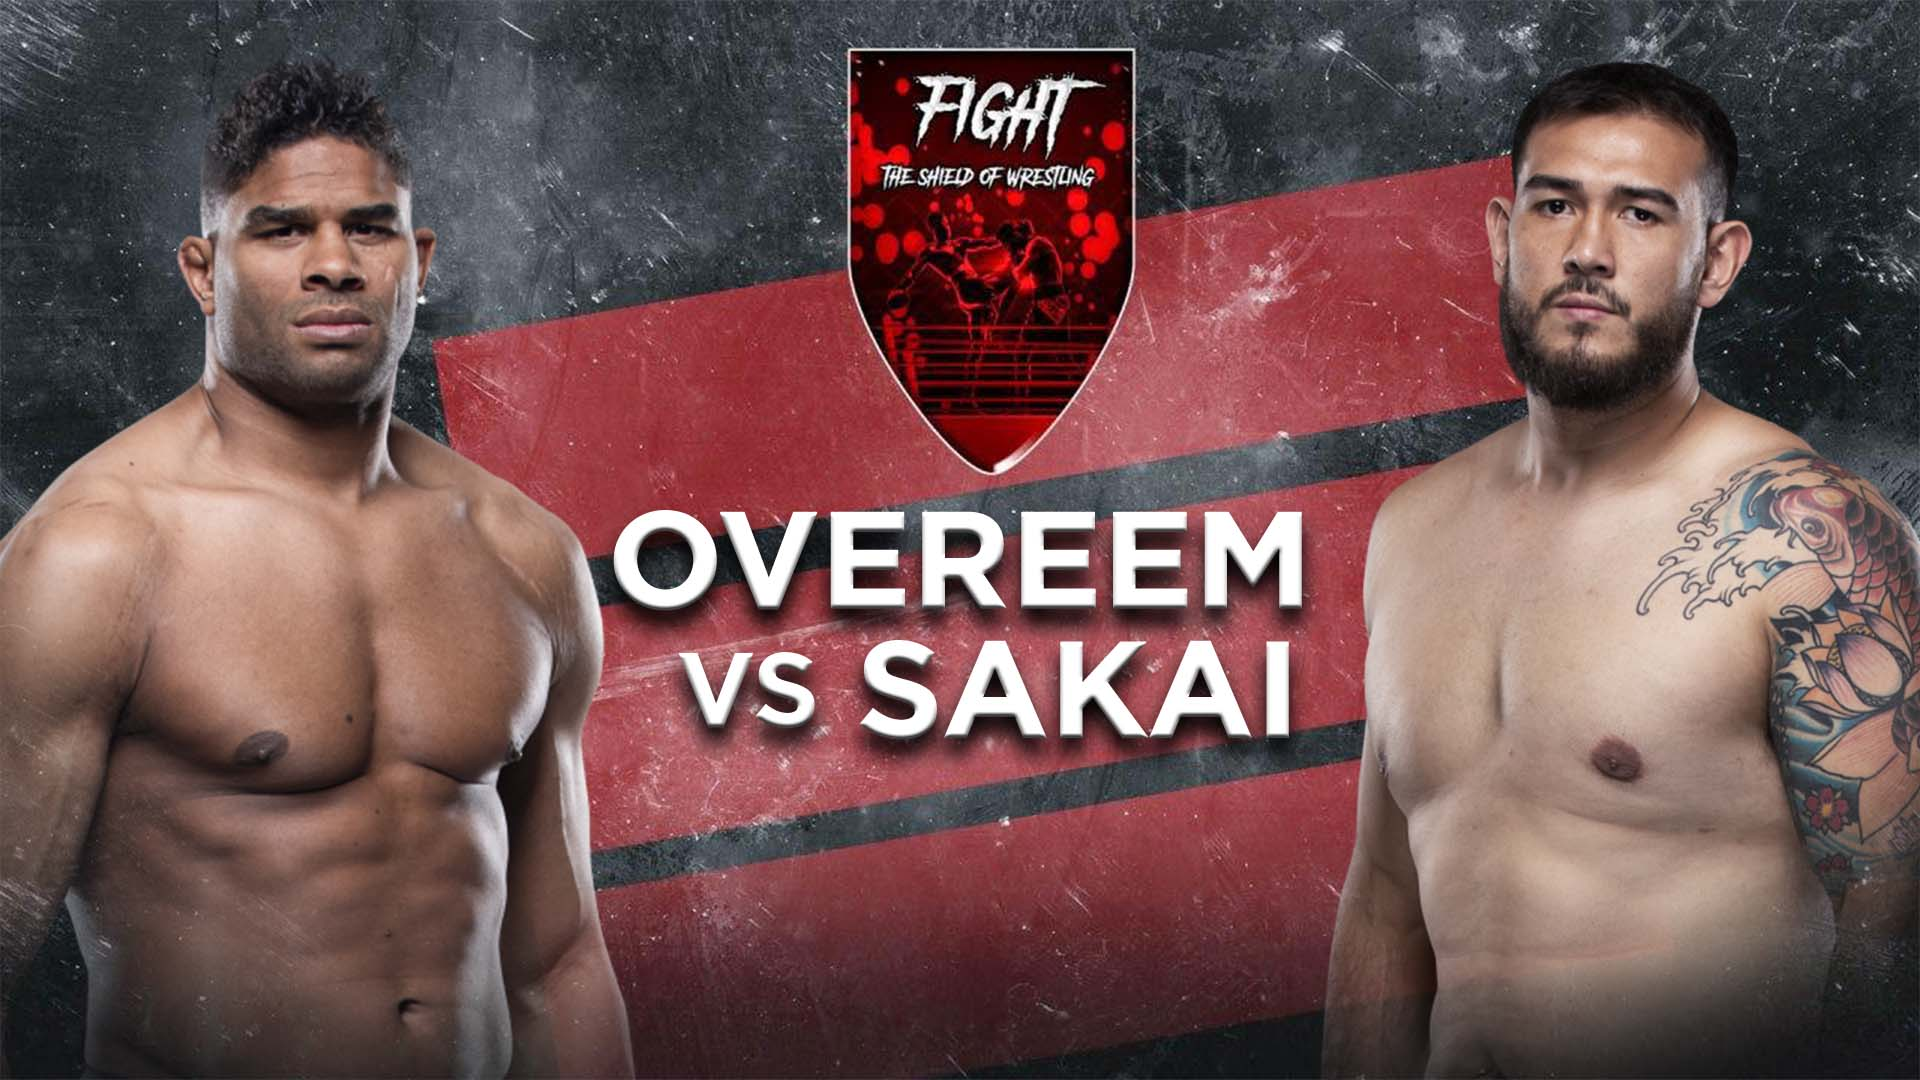 Overeem vs Sakai: Le reazioni dei fighters